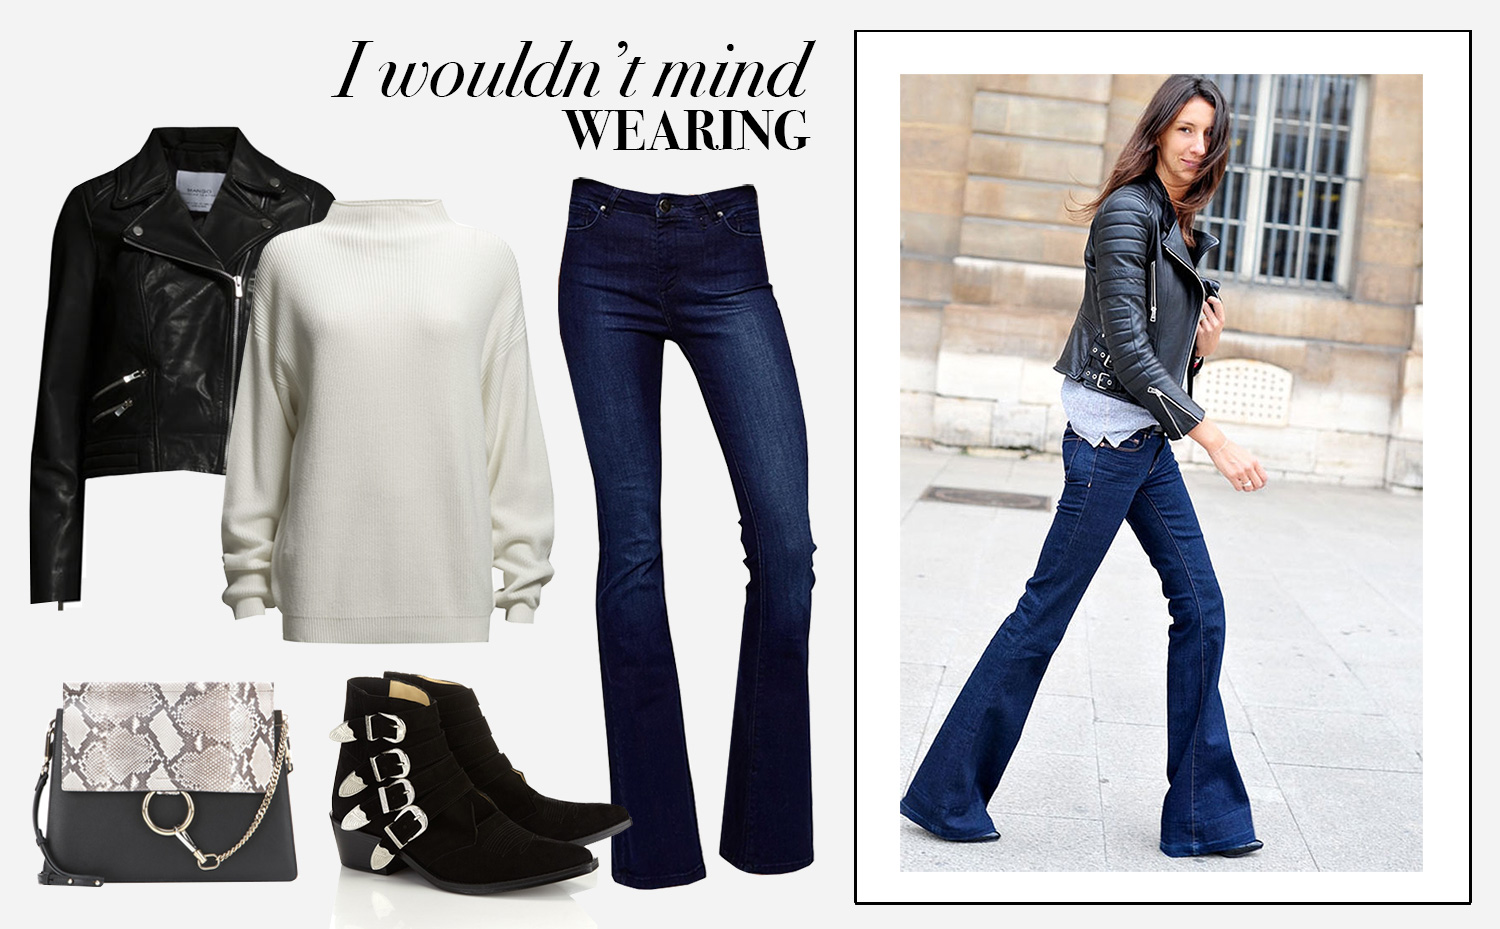 flare-jeans@2x